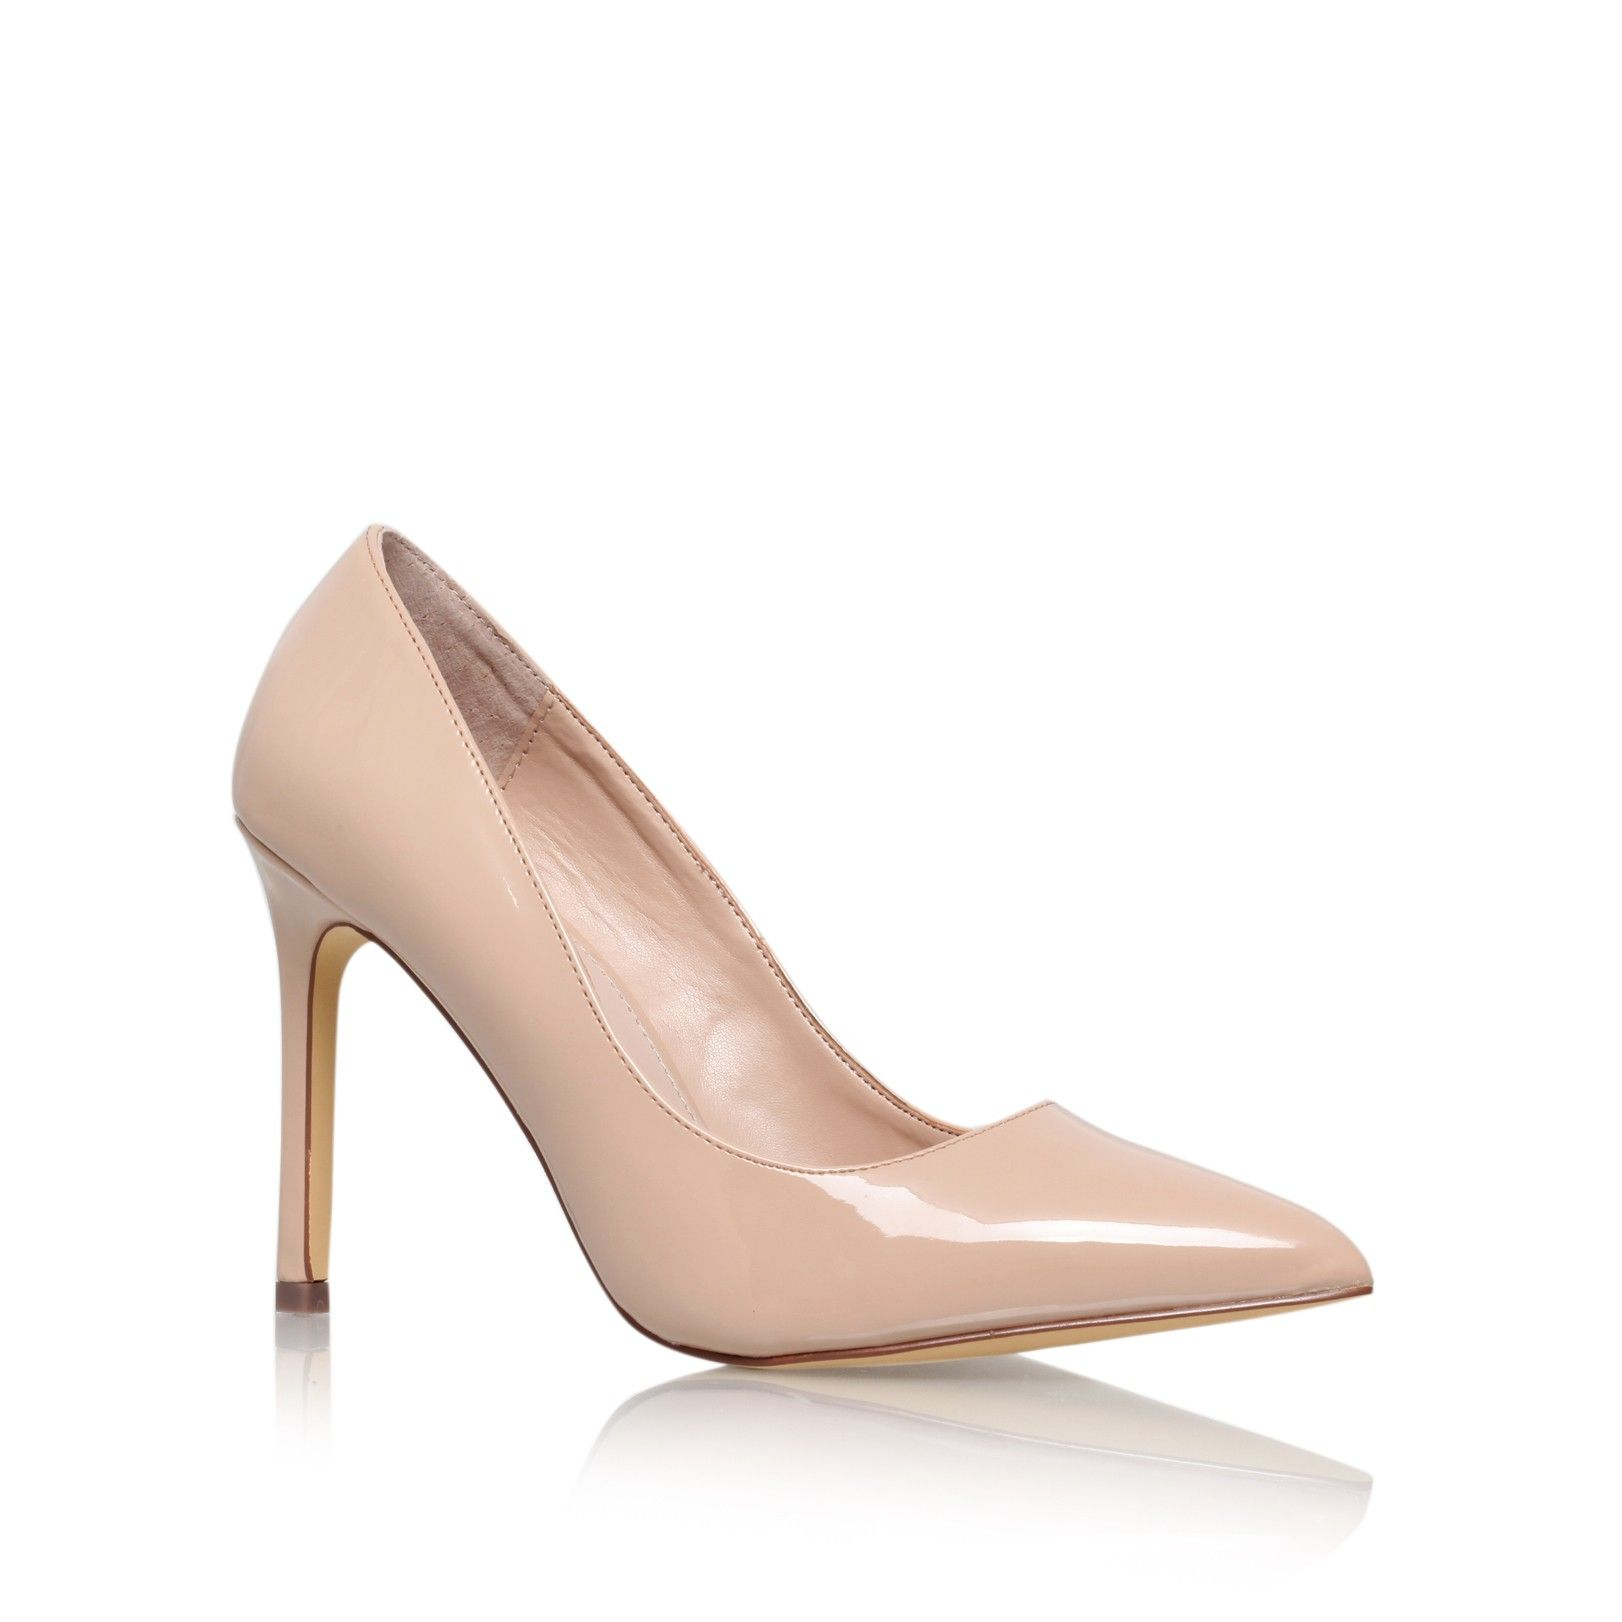 KESTRAL Nude High Heel Court Shoes by Carvela Kurt Geiger | Kurt ...